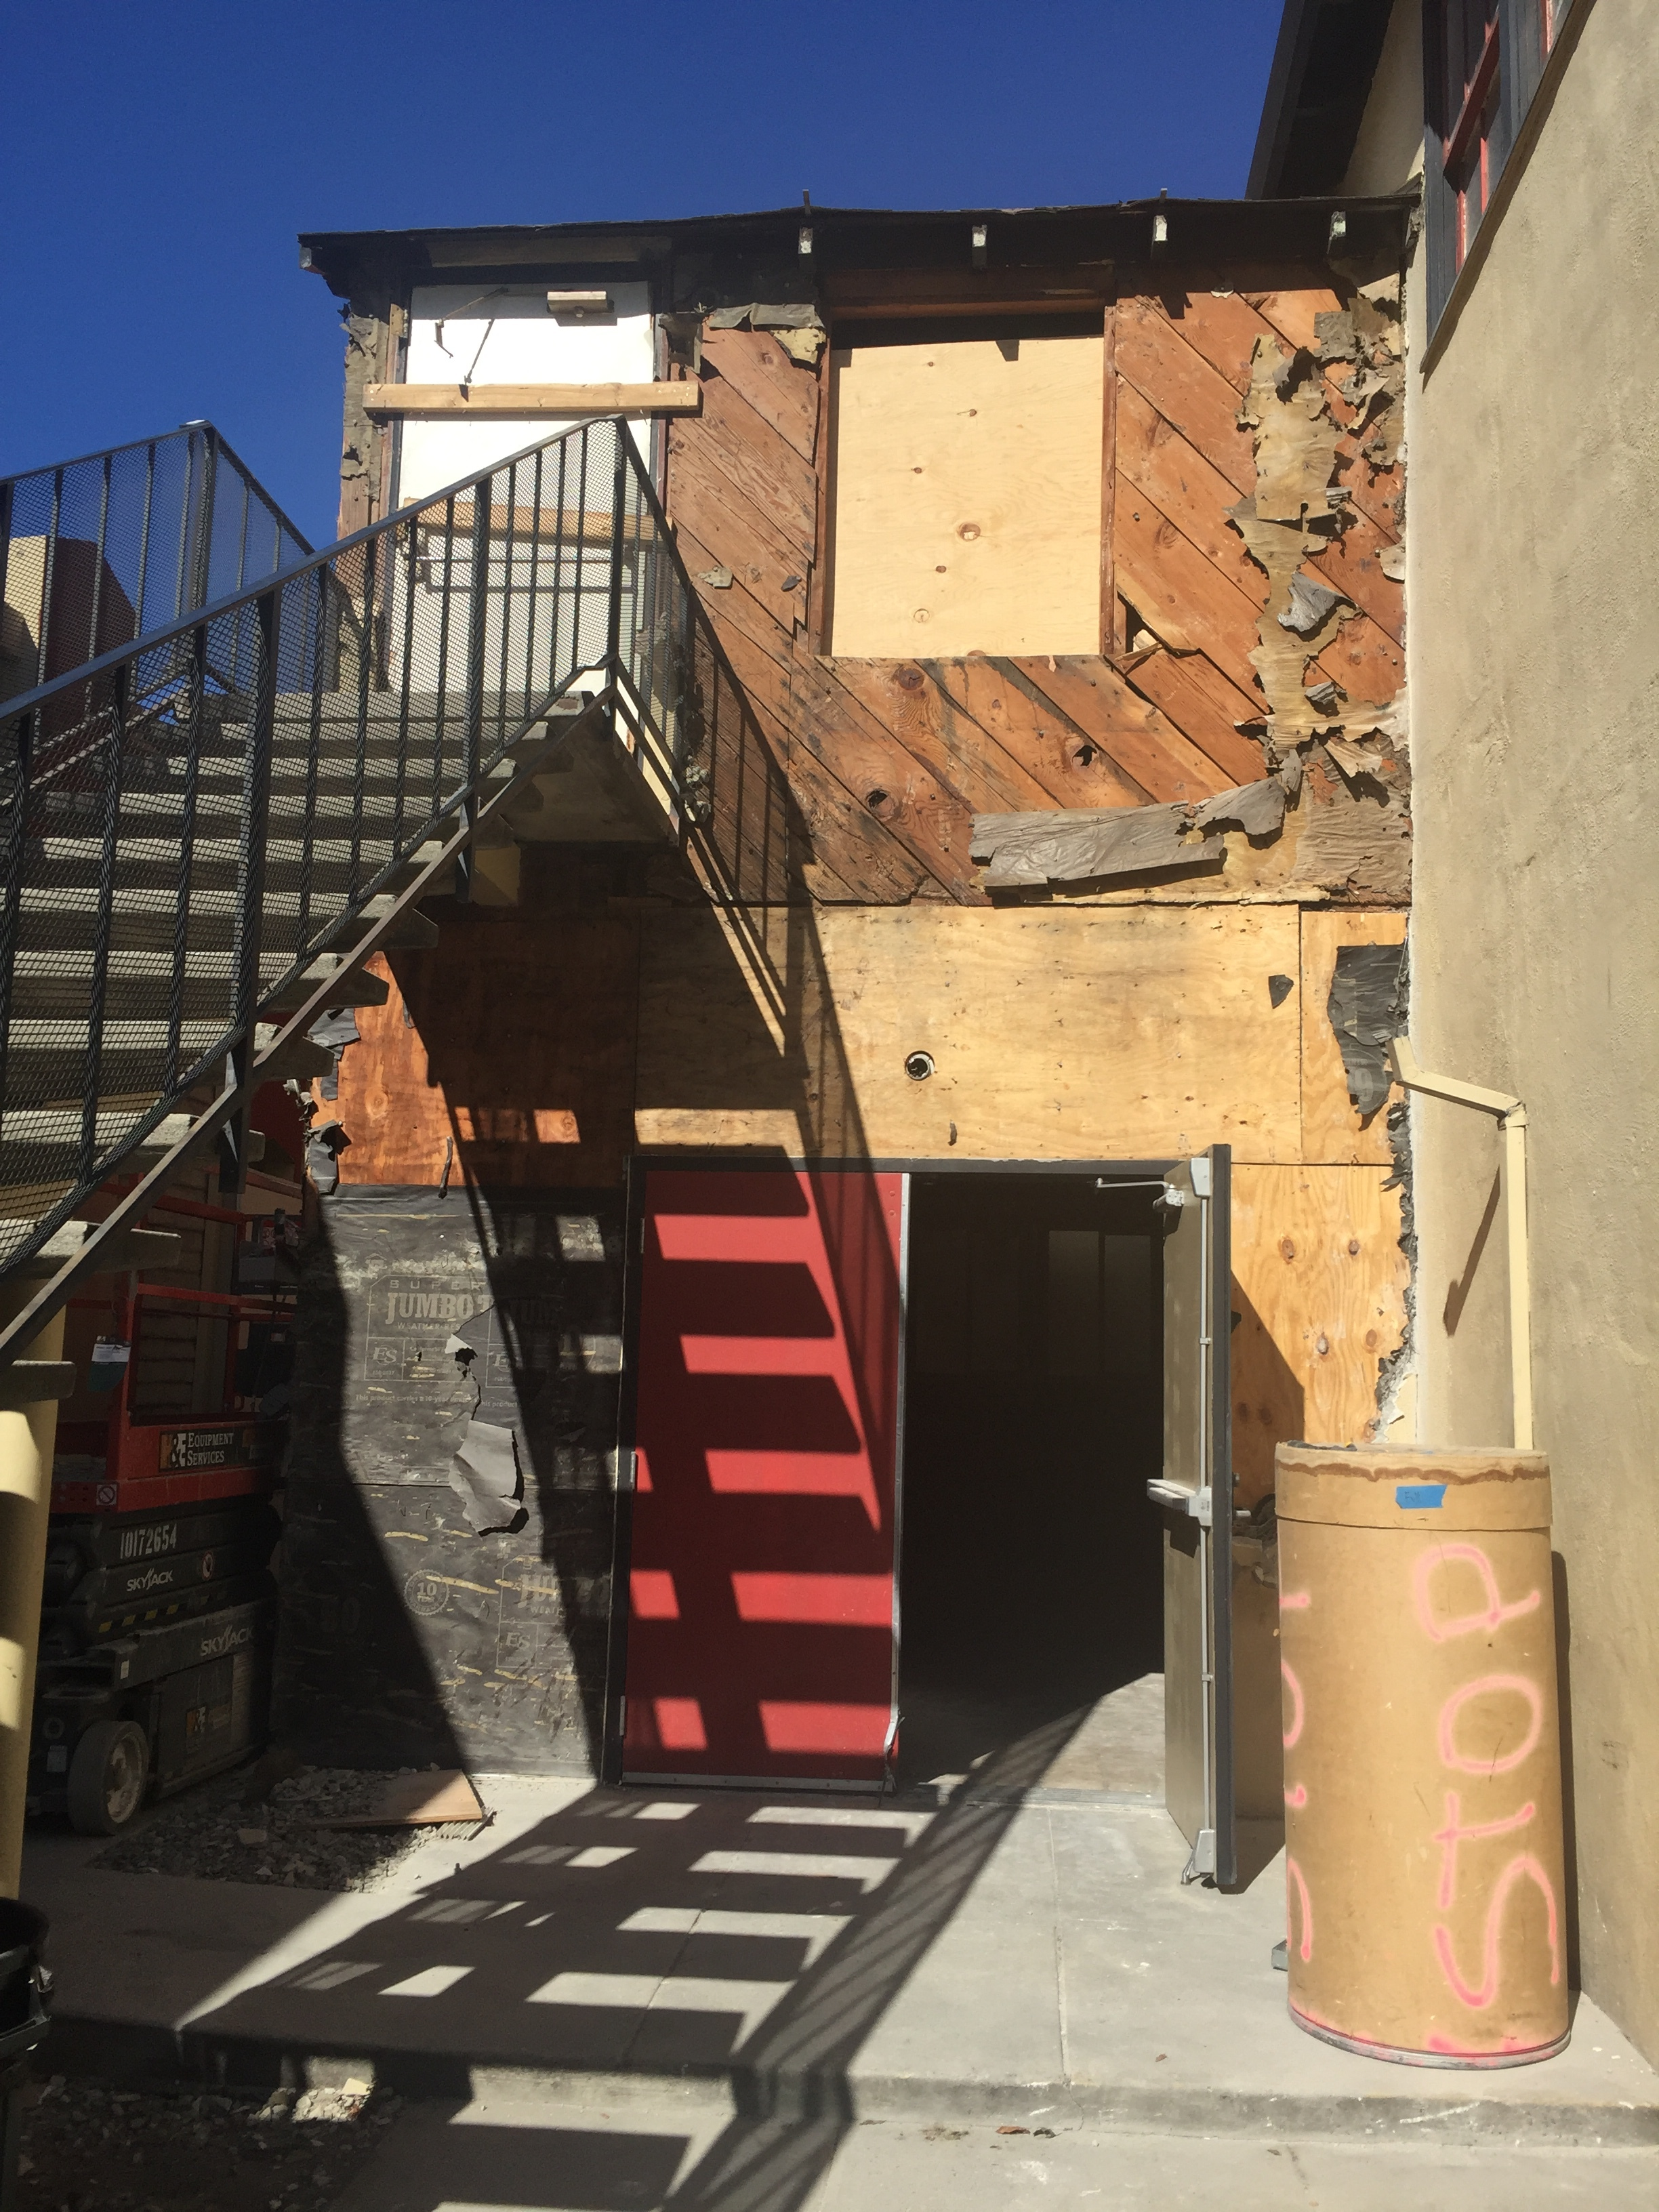 2018-10-12 Demolition of building exterior